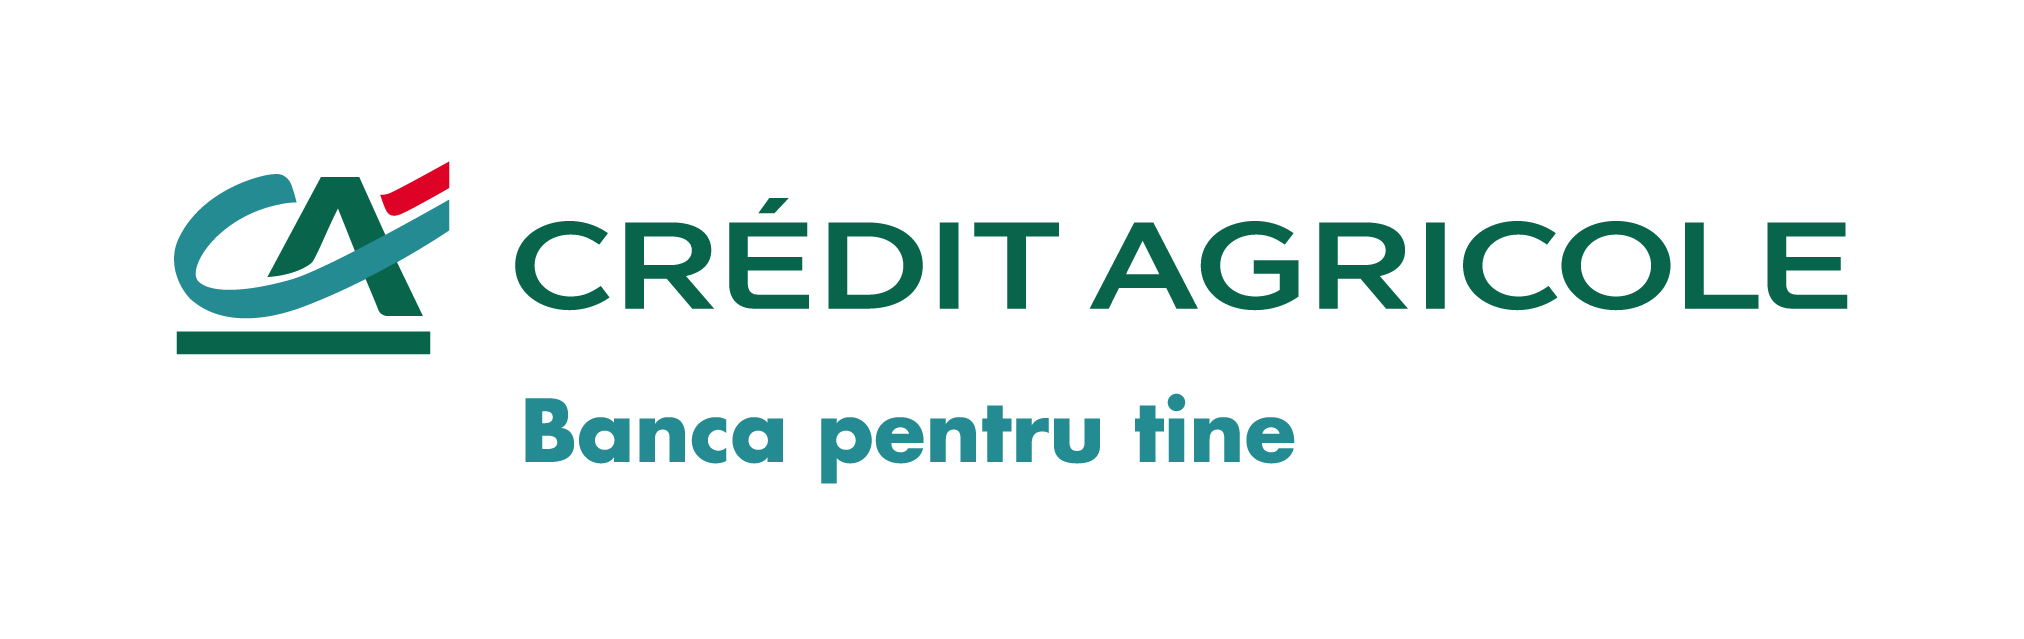 Credit Agricole Bank